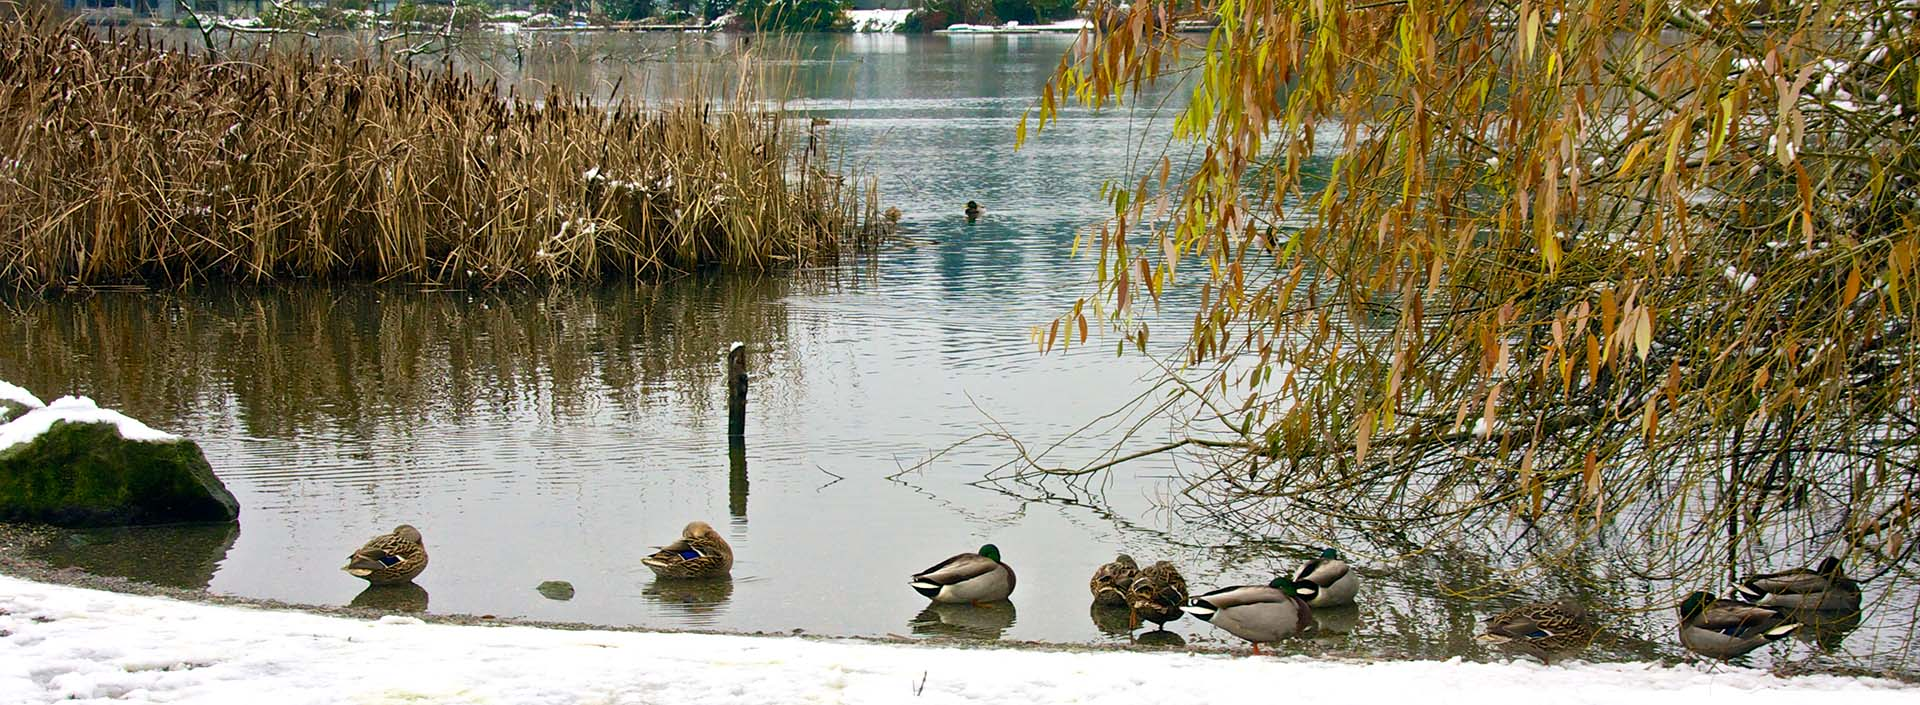 Ducks on Echo Lake with snow